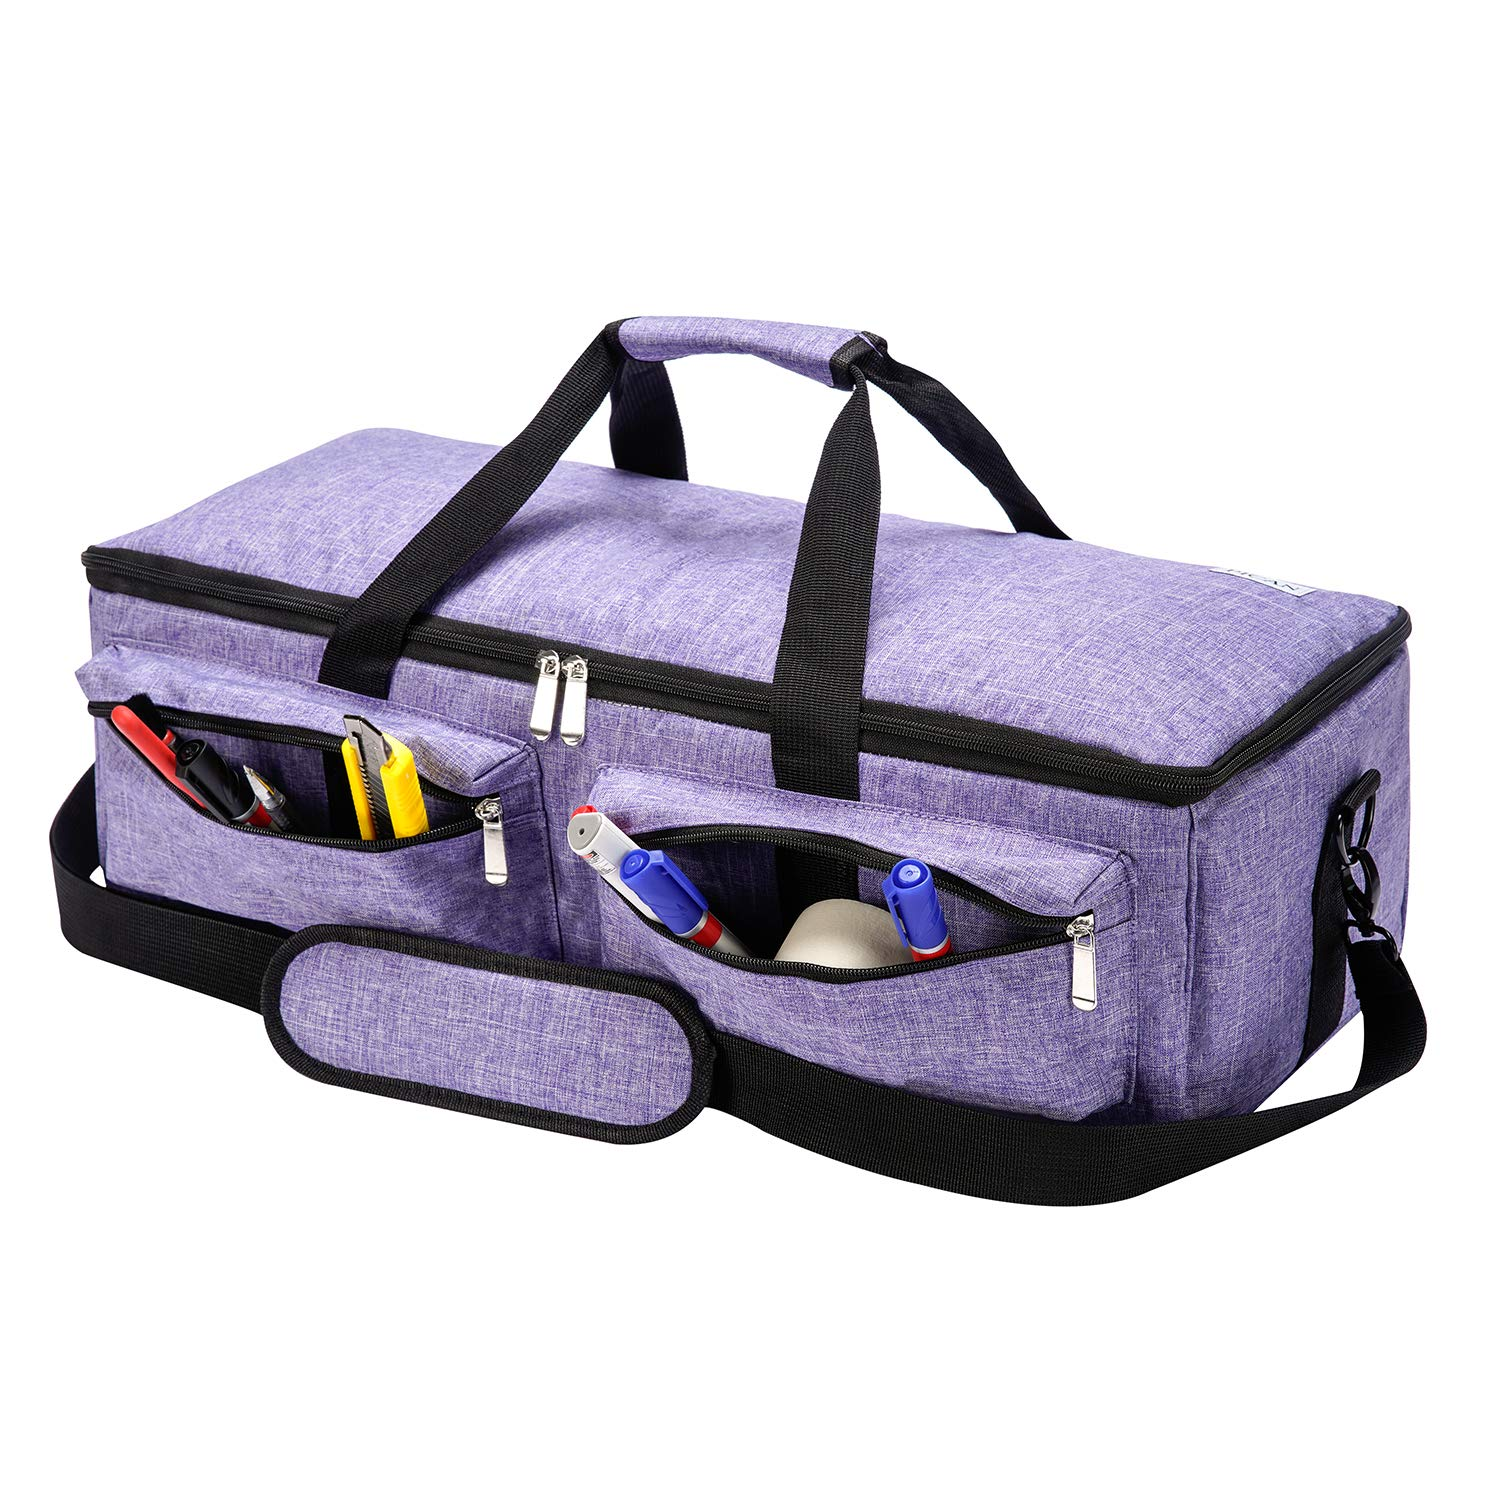 PICAN Foldable Lightweight Carrying Bag Compatible with Cricut Explore Air and Maker, Tote Bag Compatible with Cricut Explore Air 2 and Silhouette Cameo 3 (Purple with Thick Pad)